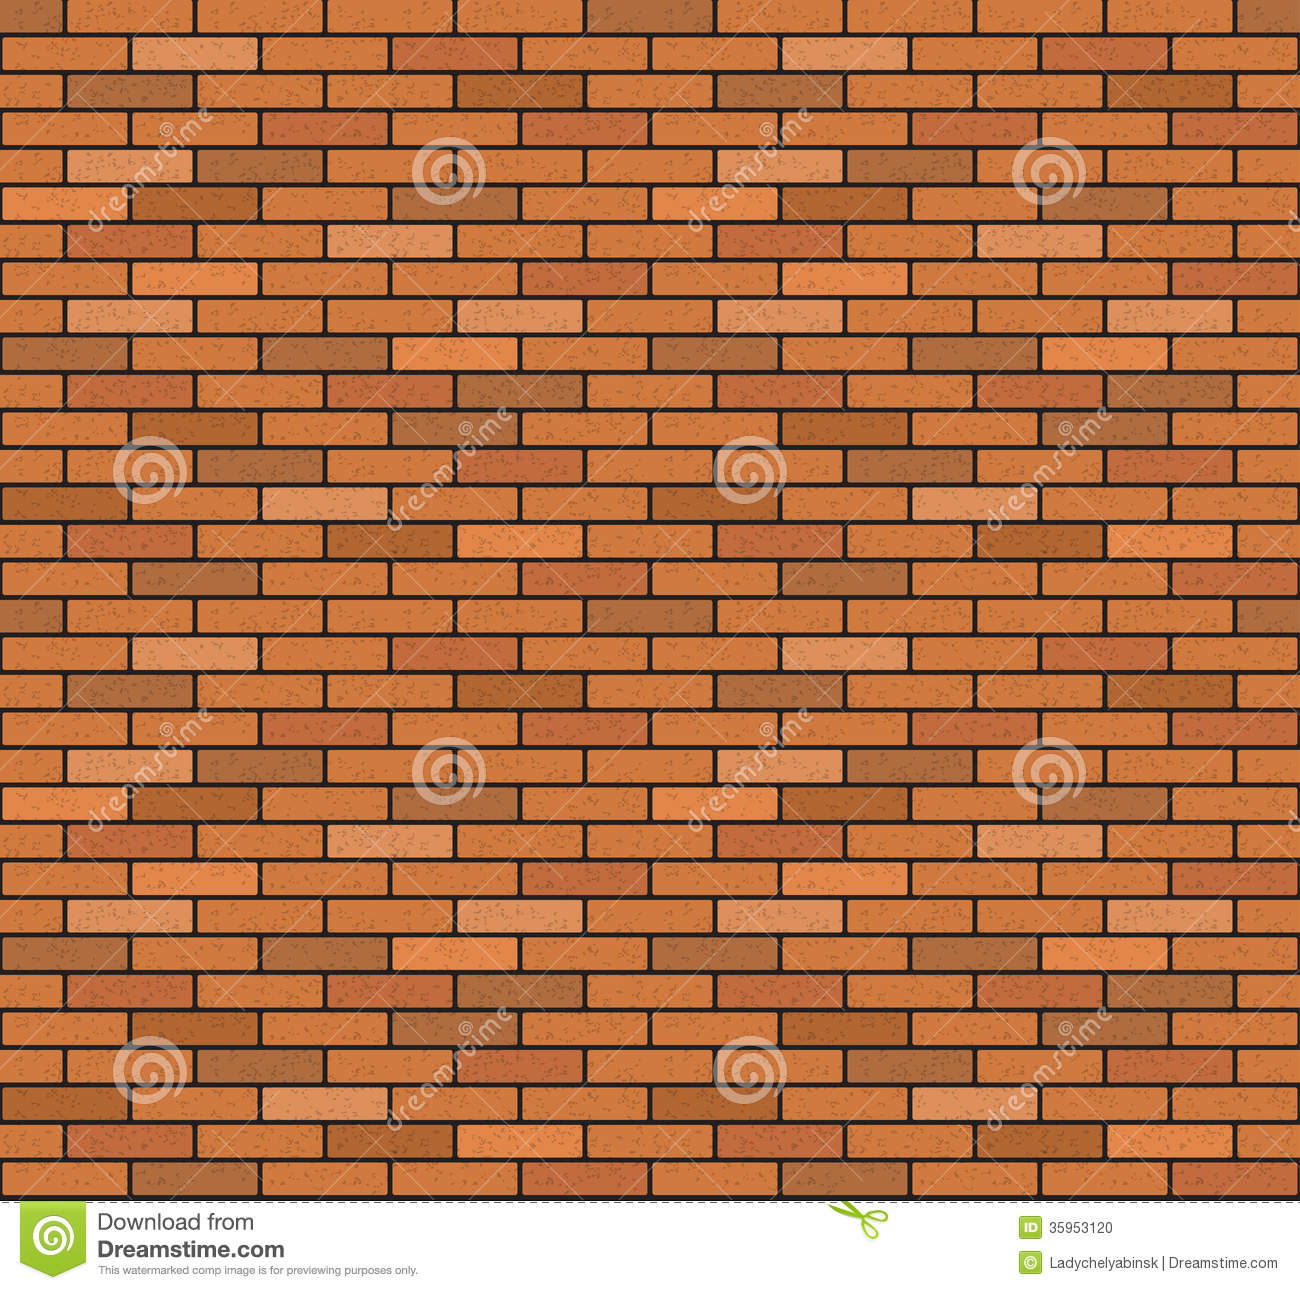 Single Brick Clipart.